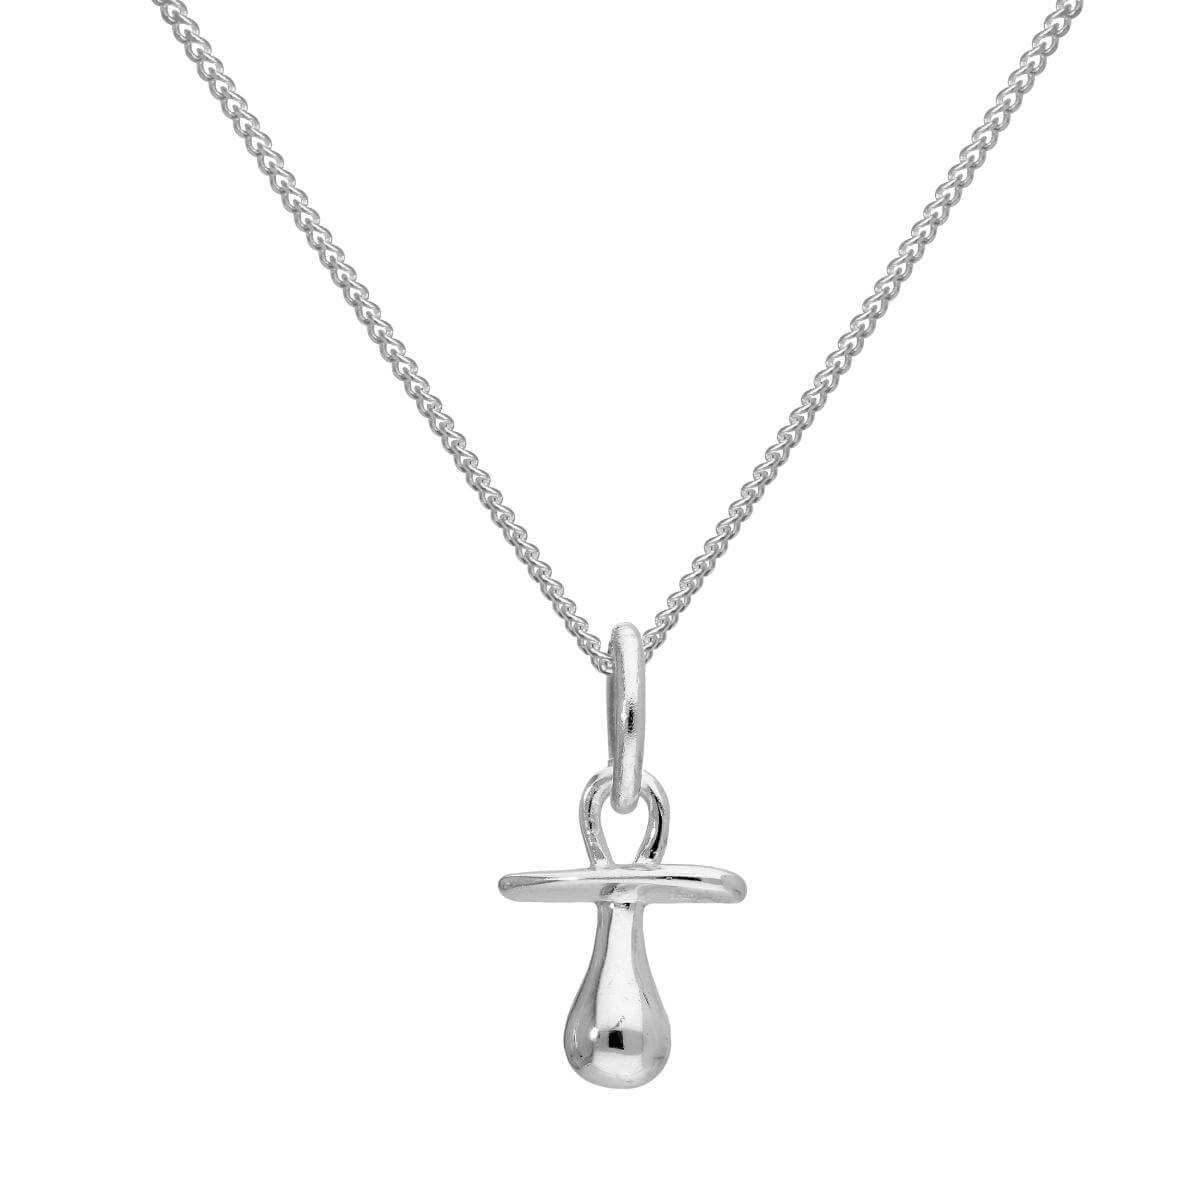 Sterling Silver Baby's Dummy Pendant Necklace 16 - 22 Inches